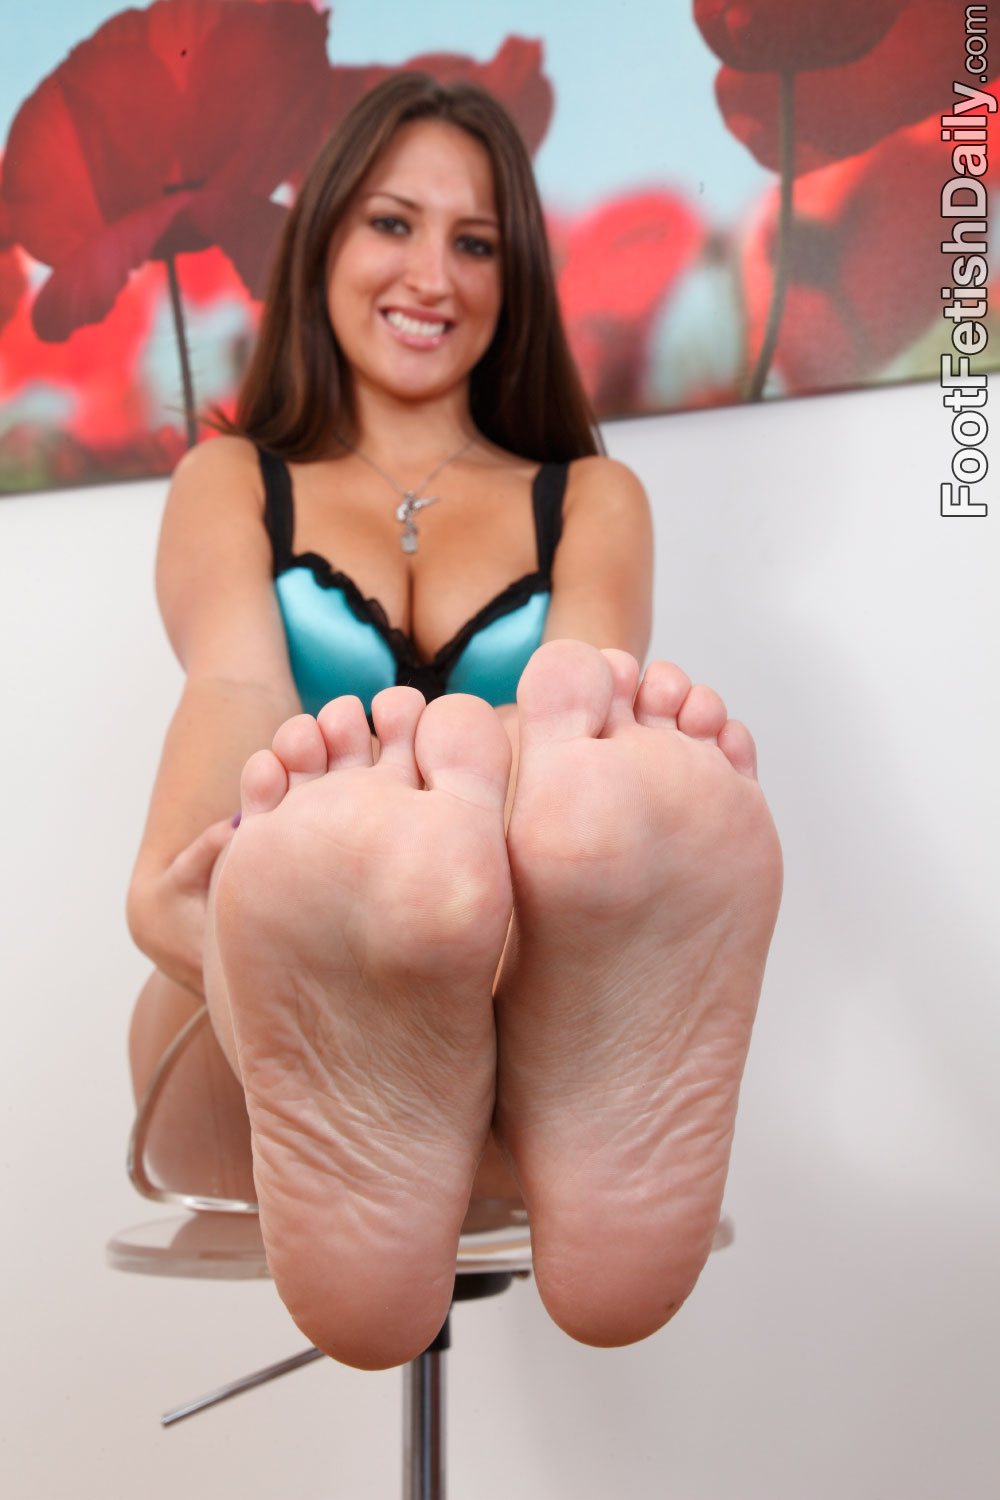 Chris charming gets footjob from lizz tayler xxxbunker